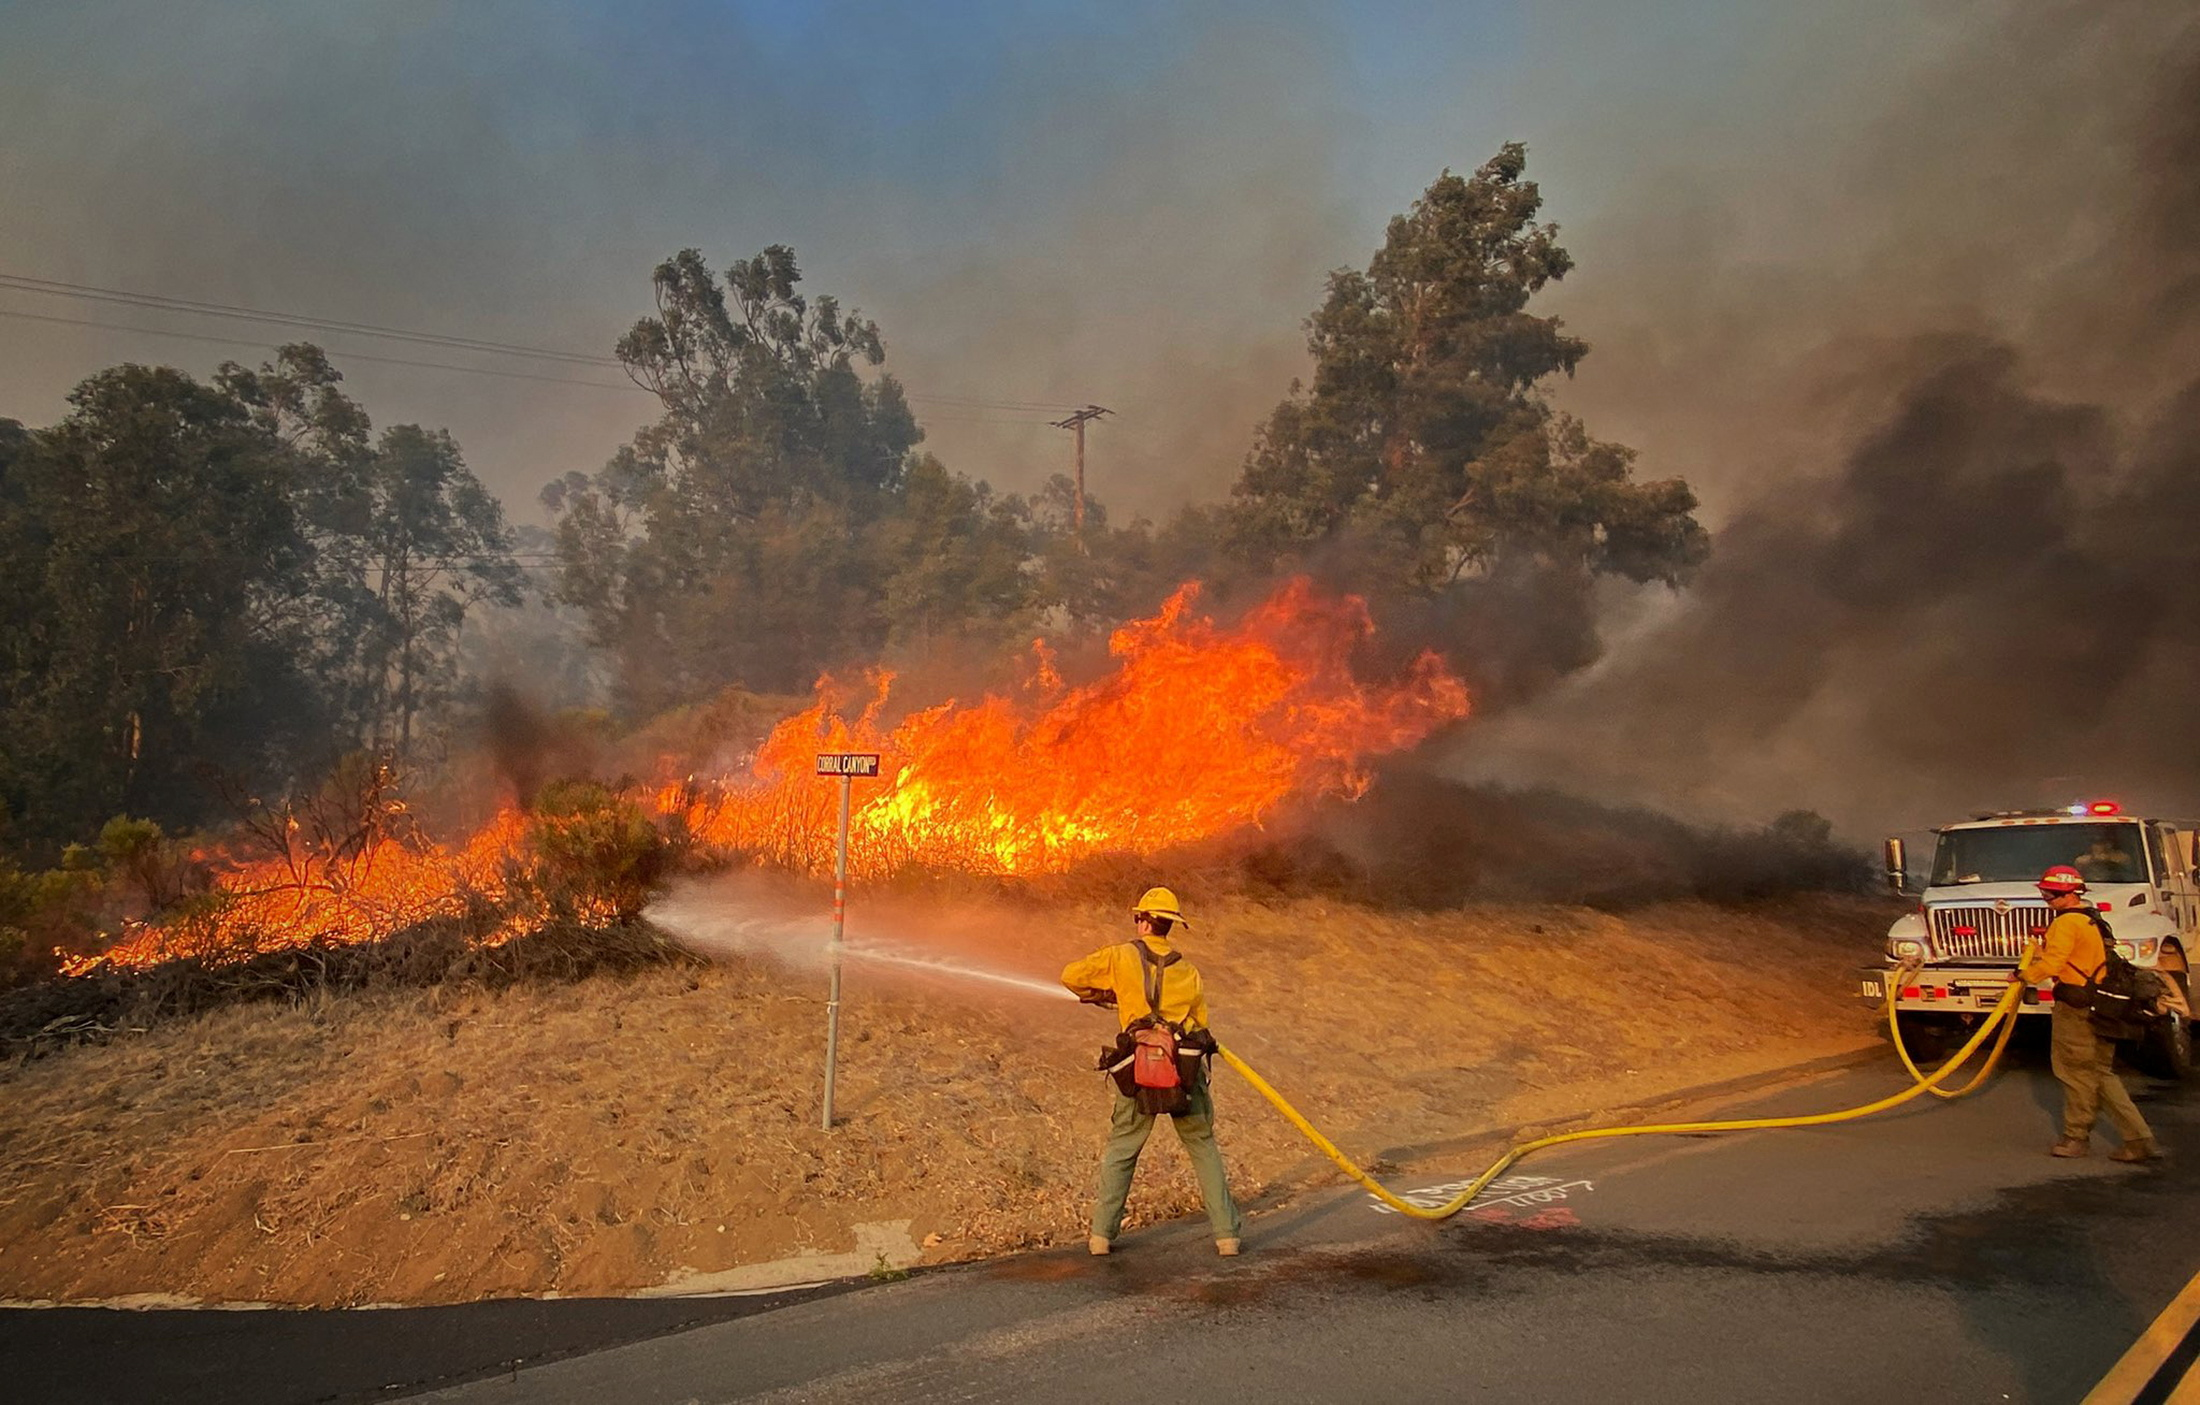 Firefighters work on a roadside fire off Calle Real near Refugio Road, while battling the Alisal Fire west of Capitan, California, U.S. October 12, 2021. Mike Eliason/SBCo FD/Handout via REUTERS.